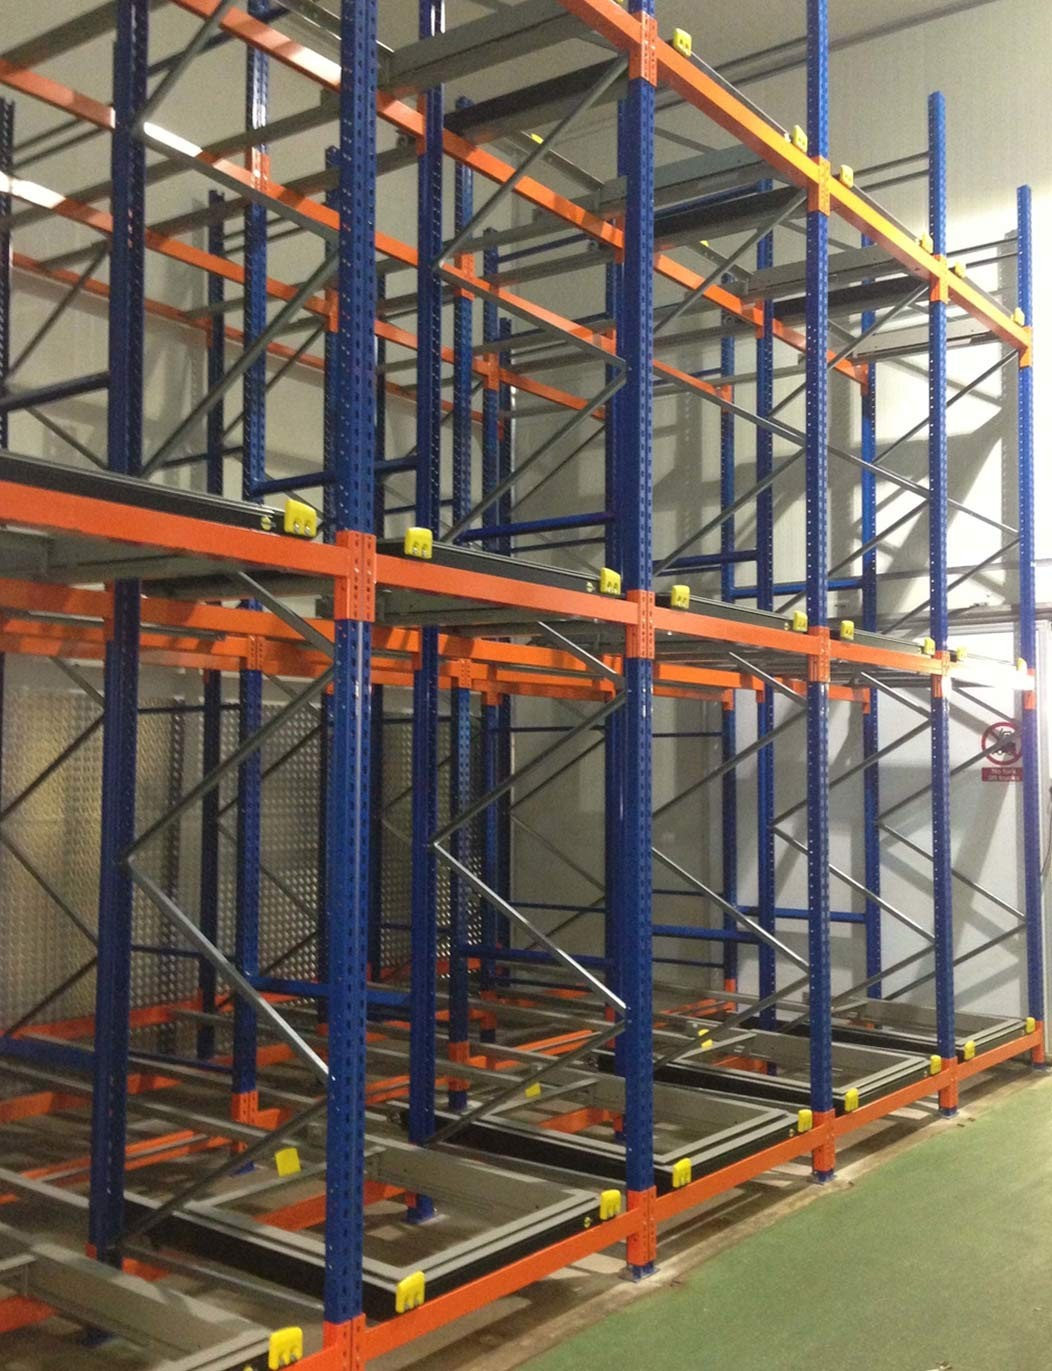 Top Five Business Storage Secrets for Everyone on Falcondale Life blog. Improve processes with pallet racking, computerise stock control or use external storage. Add storage between floors and improve home business storage. Warehouse racking for small and medium enterprises.